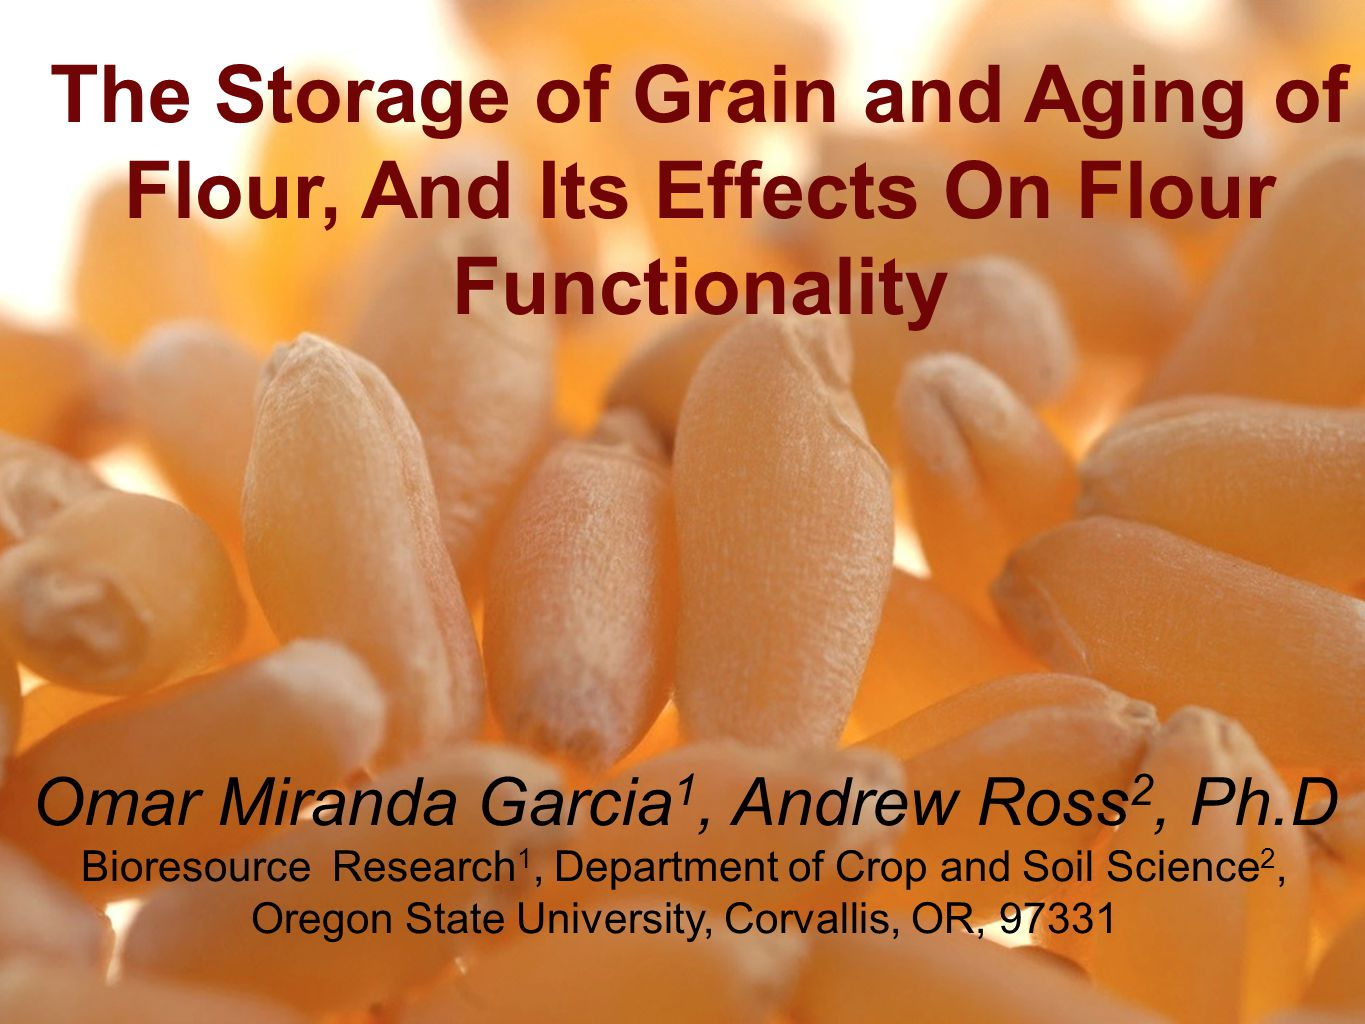 The Storage of Grain and Aging of Flour, And Its Effects On Flour Functionality Omar Miranda Garcia 1, Andrew Ross 2, Ph.D Bioresource Research 1, Department of Crop and Soil Science 2, Oregon State University, Corvallis, OR, 97331